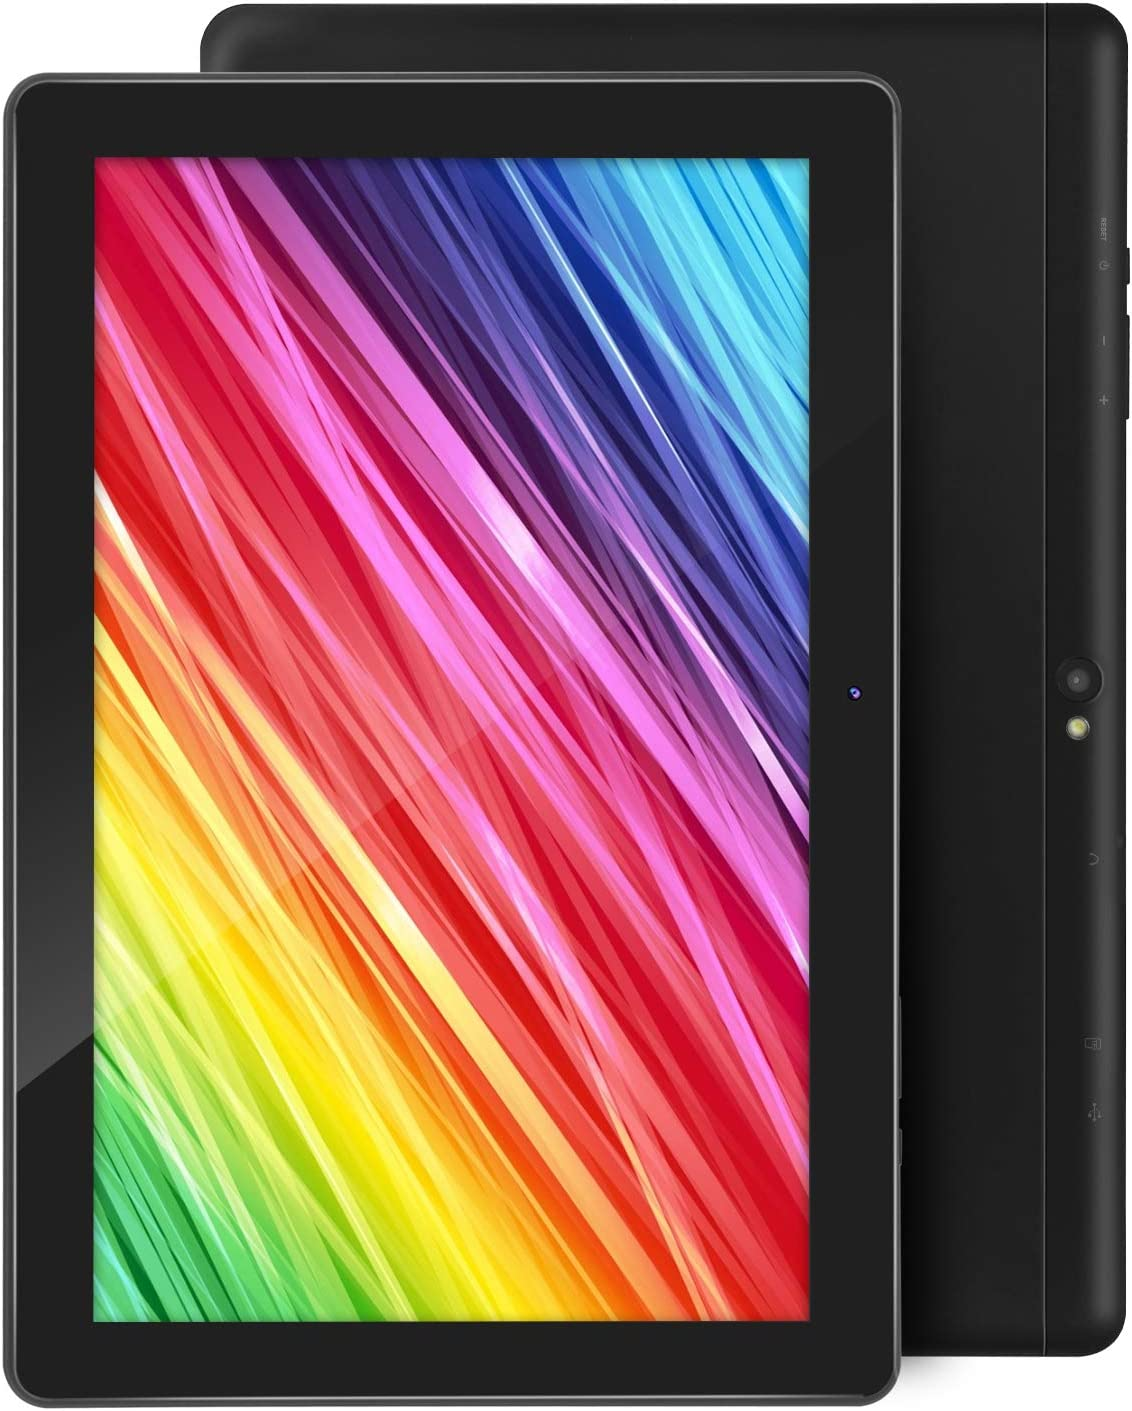 Tablet 10.1 Inch Android 9.0 Tablets with 4GB RAM+64GB ROM 2MP+ 5MP Camera, WiFi, Bluetooth, GPS, Quad Core,1280x800 HD Touchscreen - 6000mAh Battery (Black)